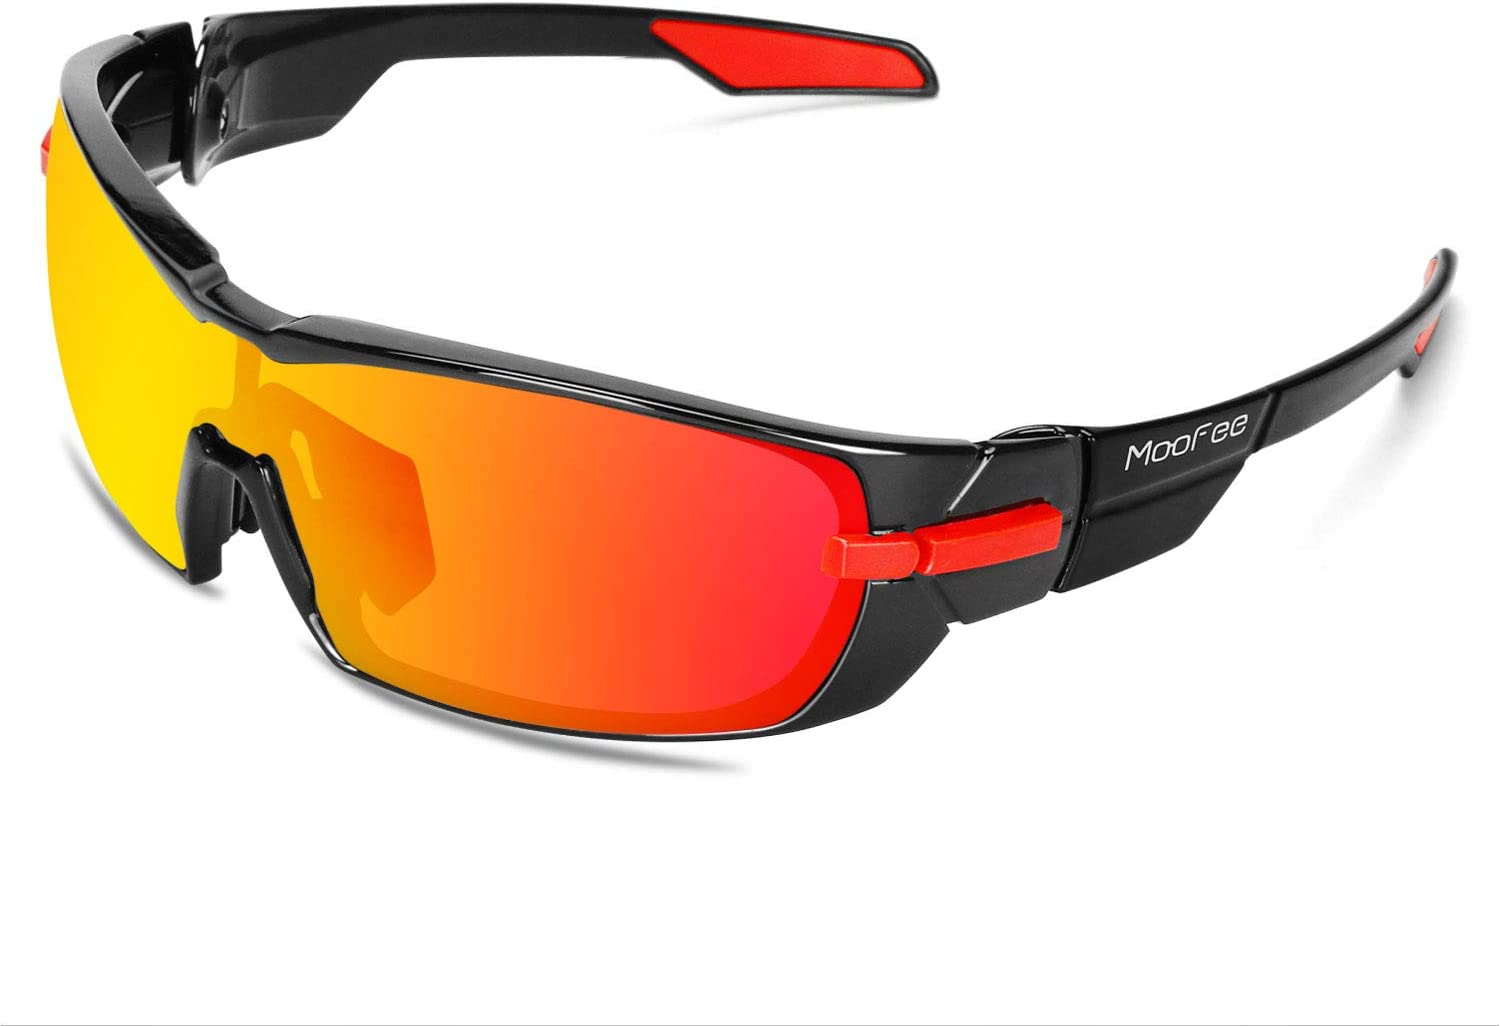 Moofee Polarized Sports Sunglasses with Rotatable Legs Cycling Glasses for Men